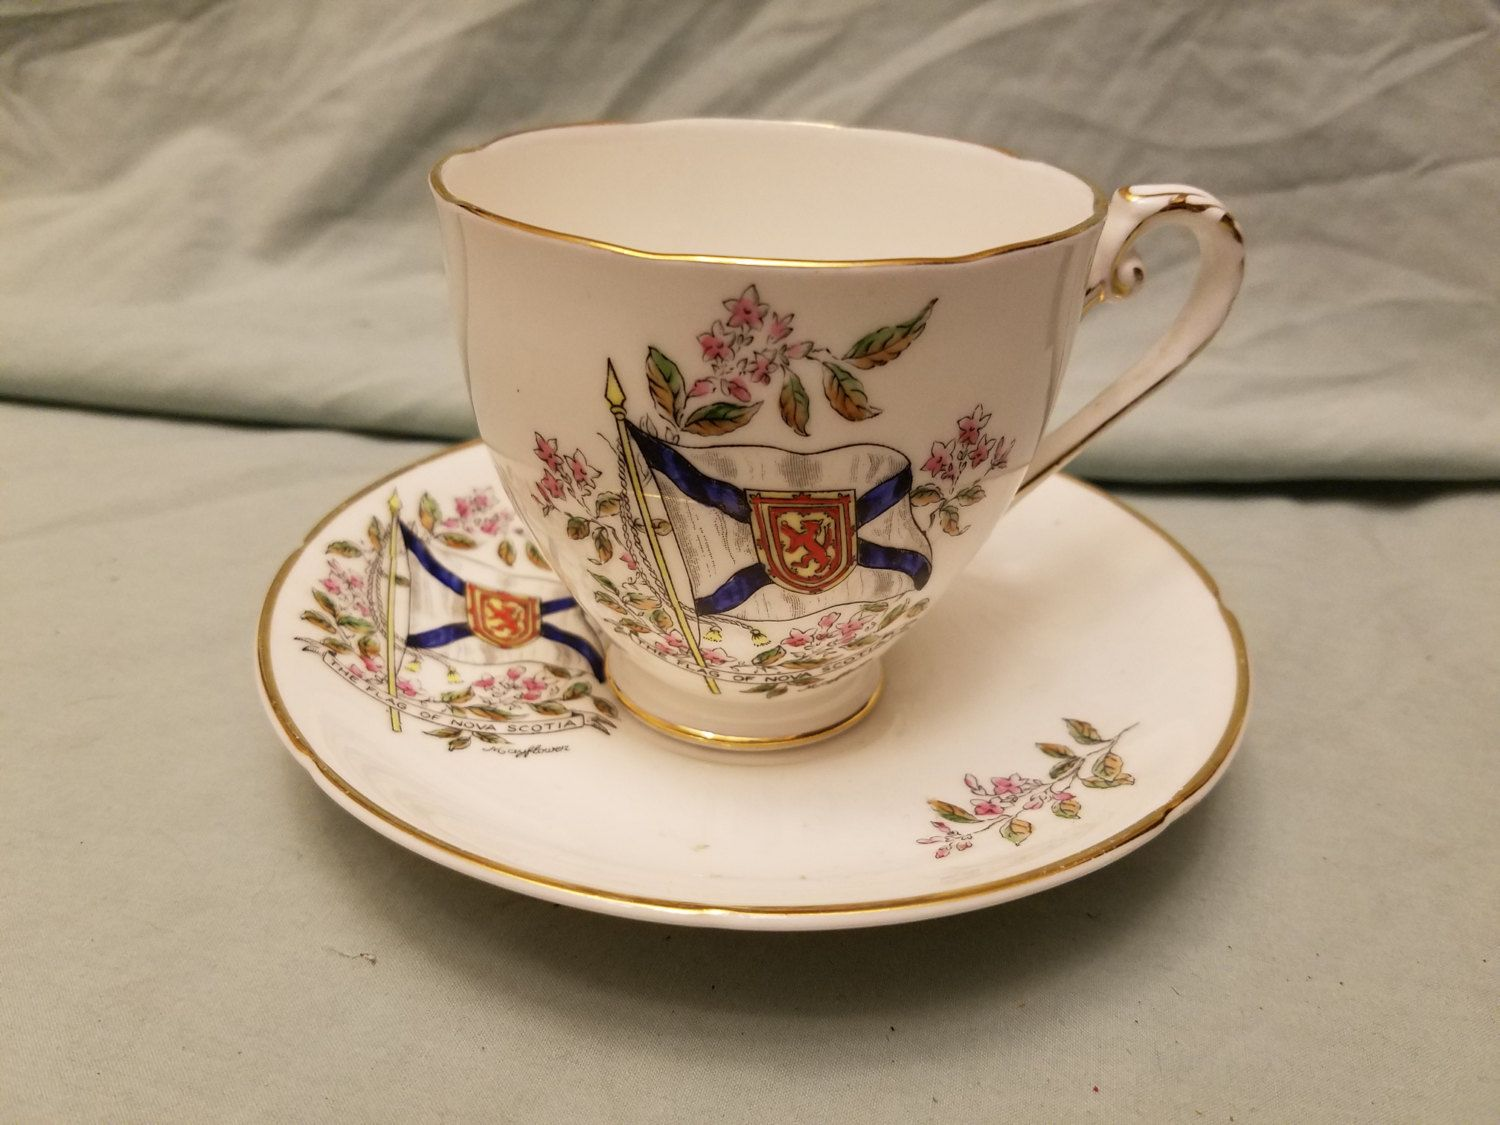 Royal albert bone china tea cup amp saucer winsome pattern ebay - Antique Pink Tea Cup And Saucer Set Aynsley Pink And Gold Tea Cup Set English Tea Set Bone China Tea Cup Pink Cup Gift For Mom